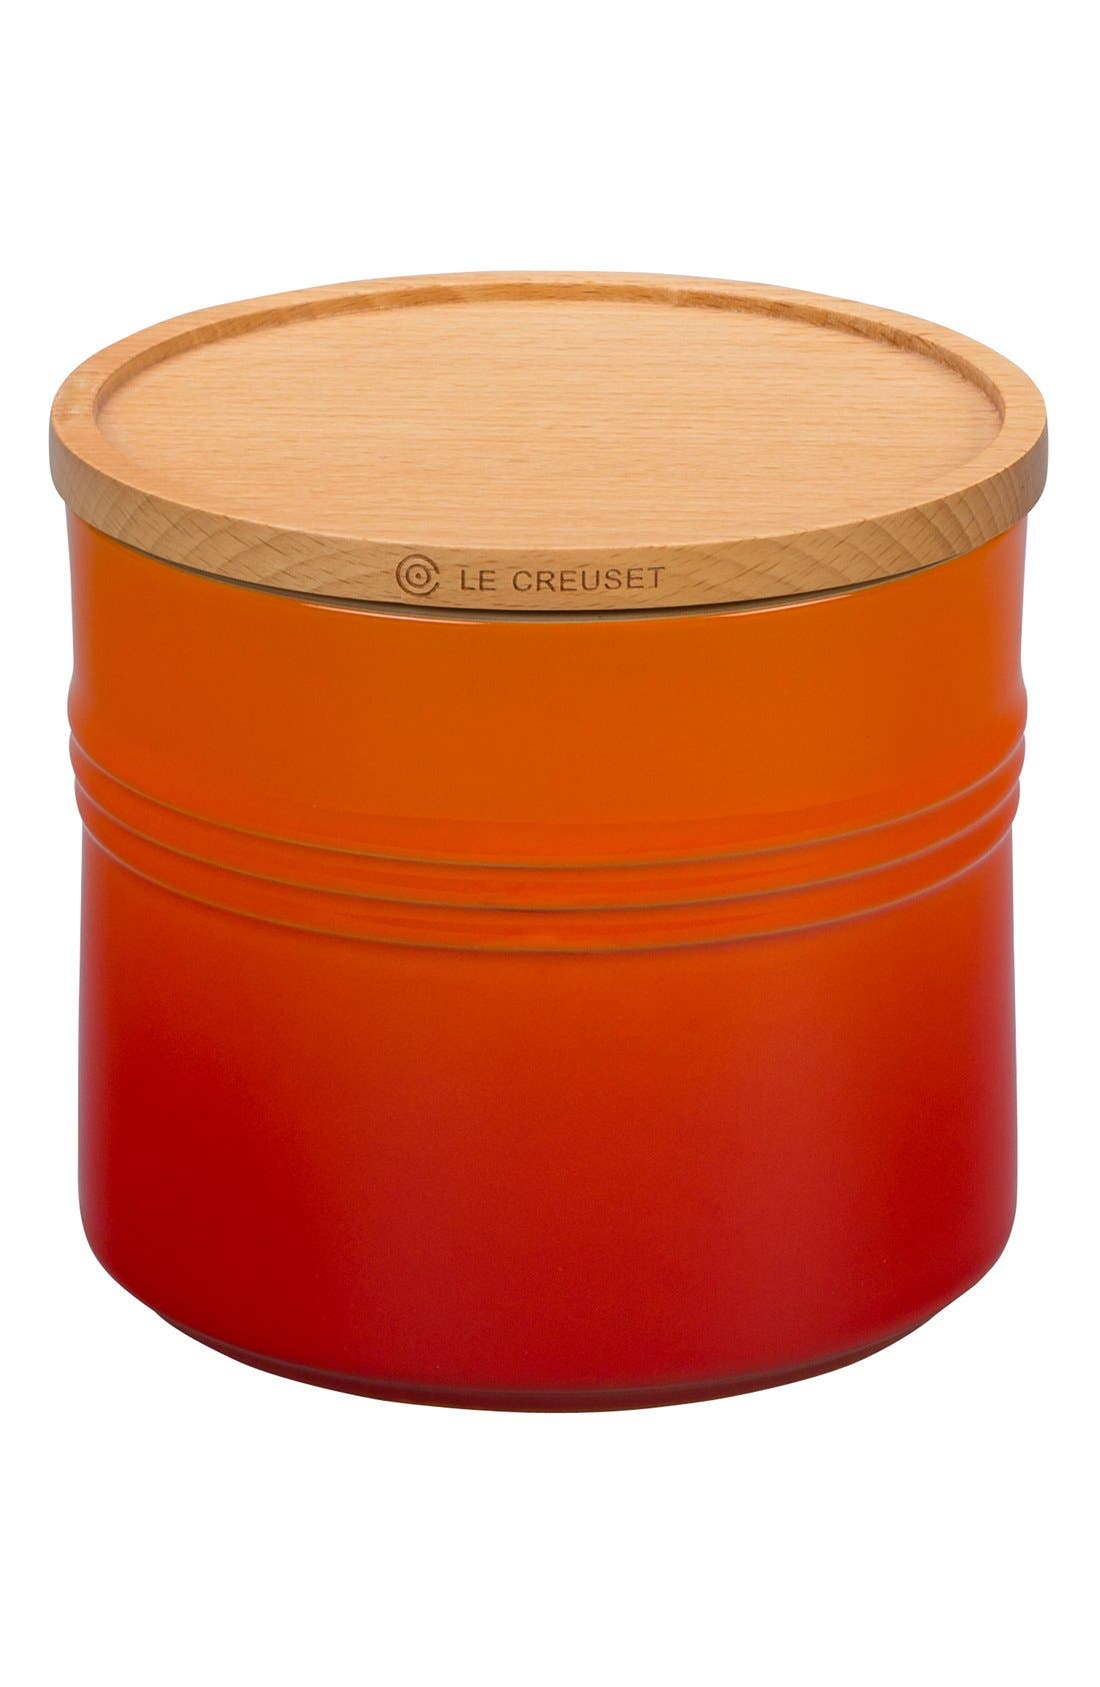 Le Creuset Glazed Stoneware 1 1/2 Quart Storage Canister with Wooden Lid